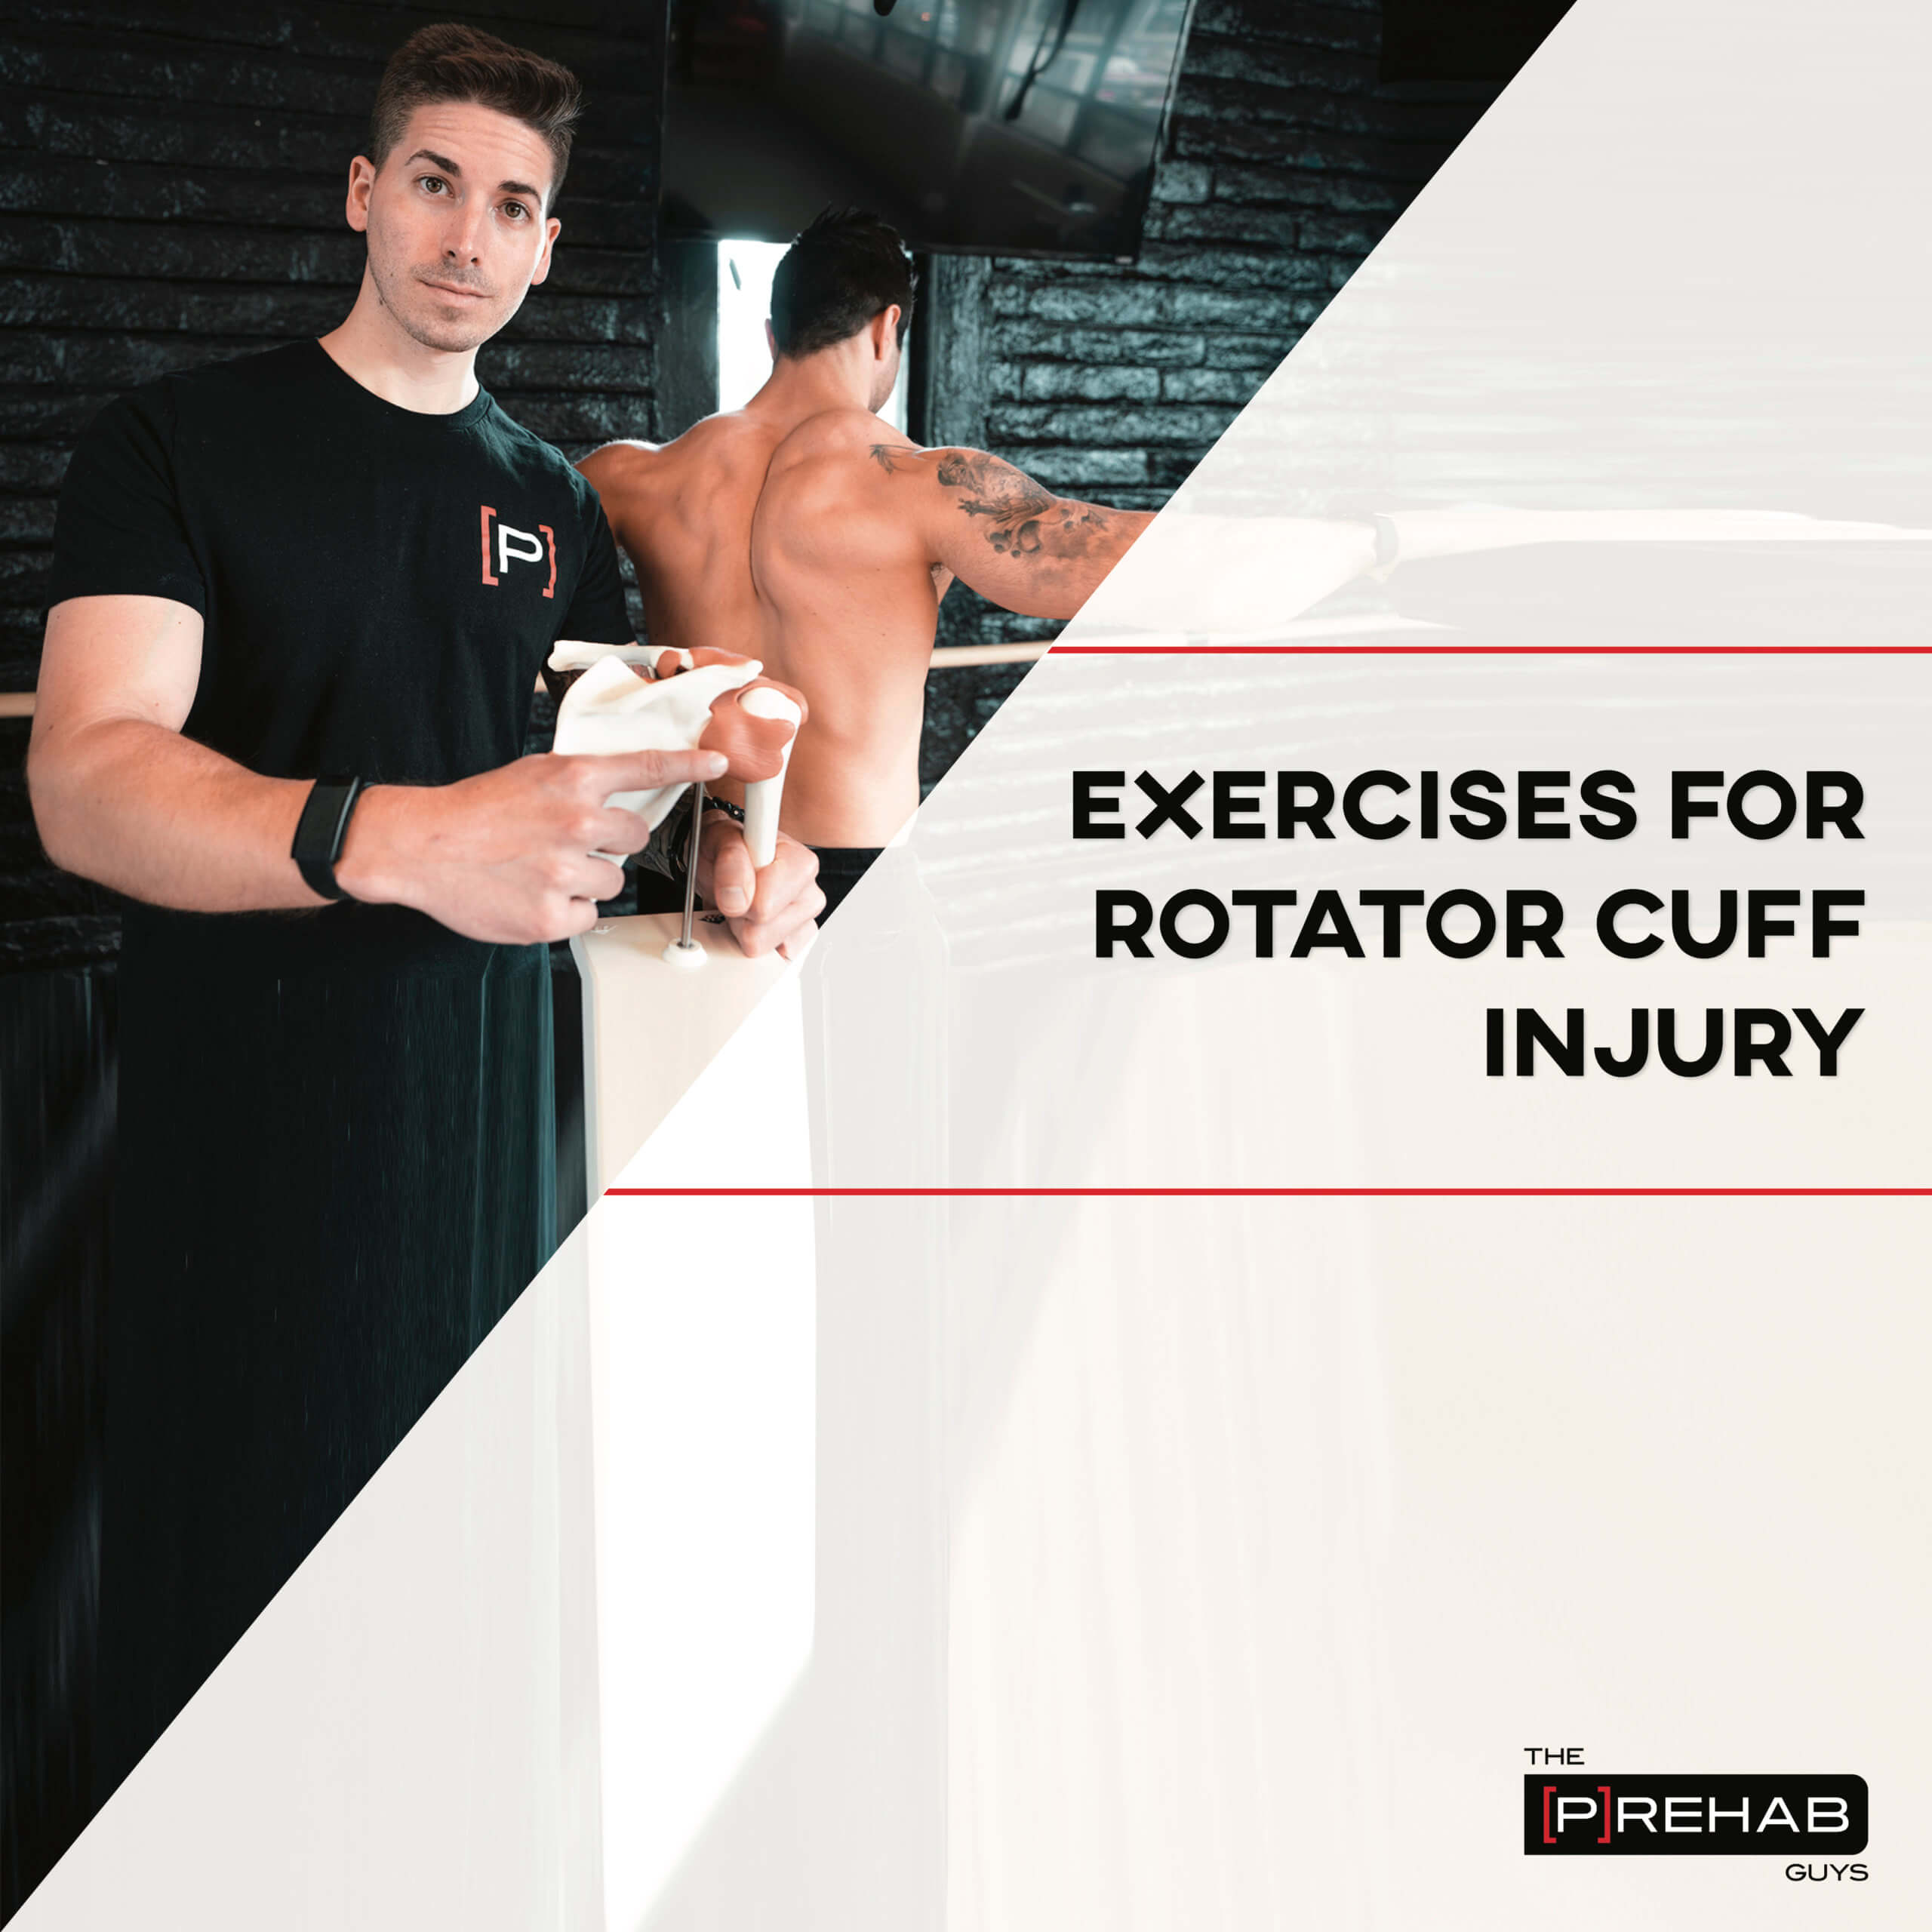 non-operative exercises for rotator cuff injury workout the prehab guys